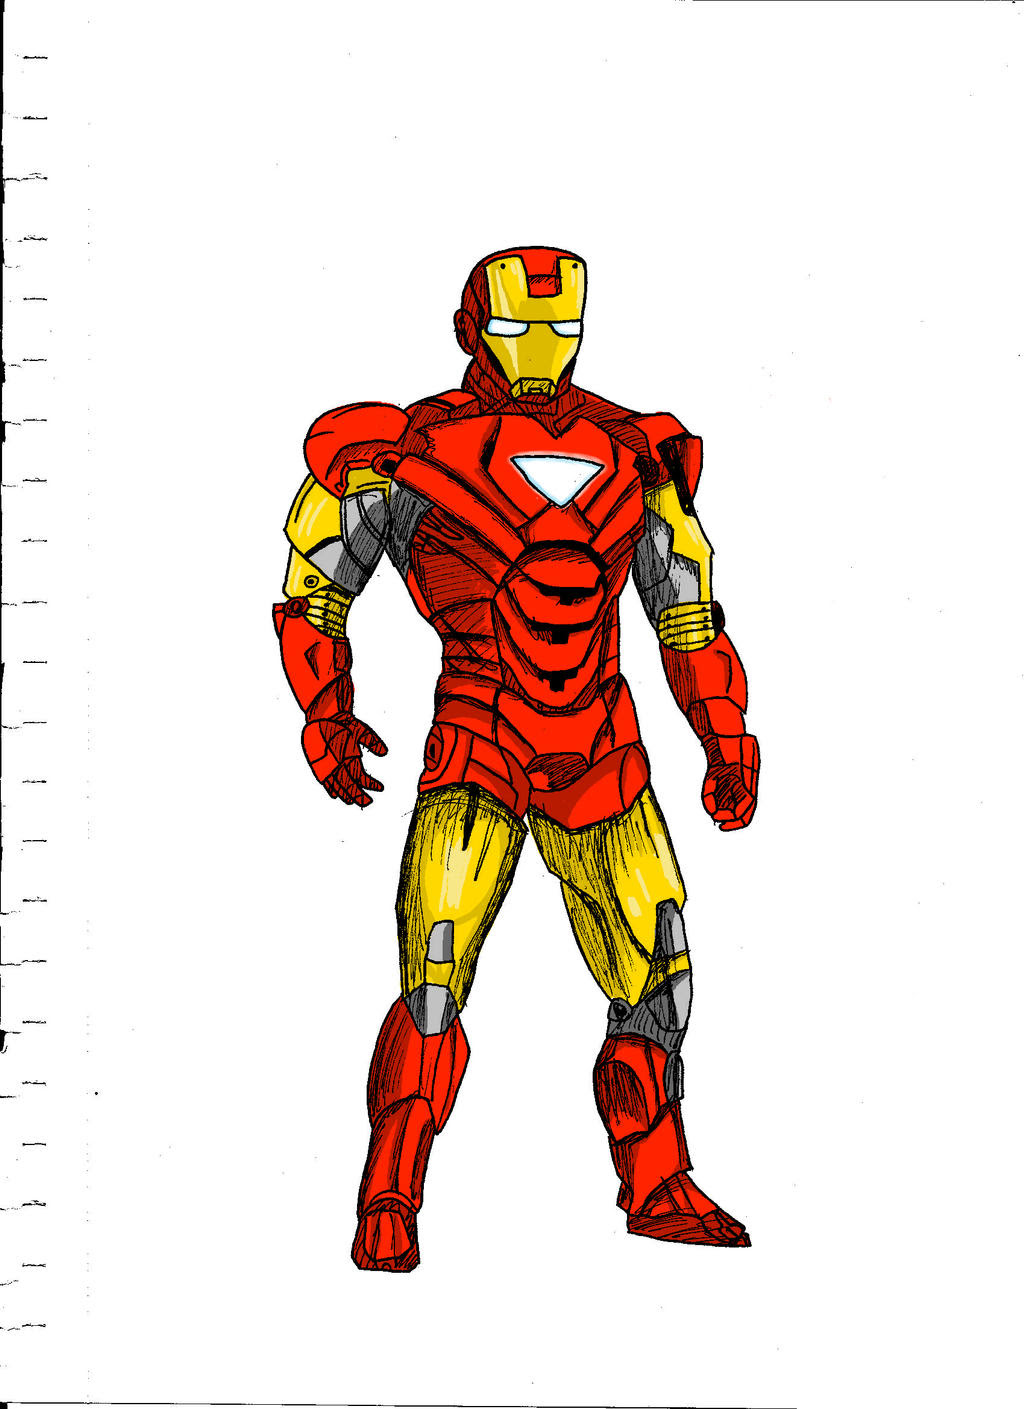 Iron Man color by Kireshi on DeviantArt